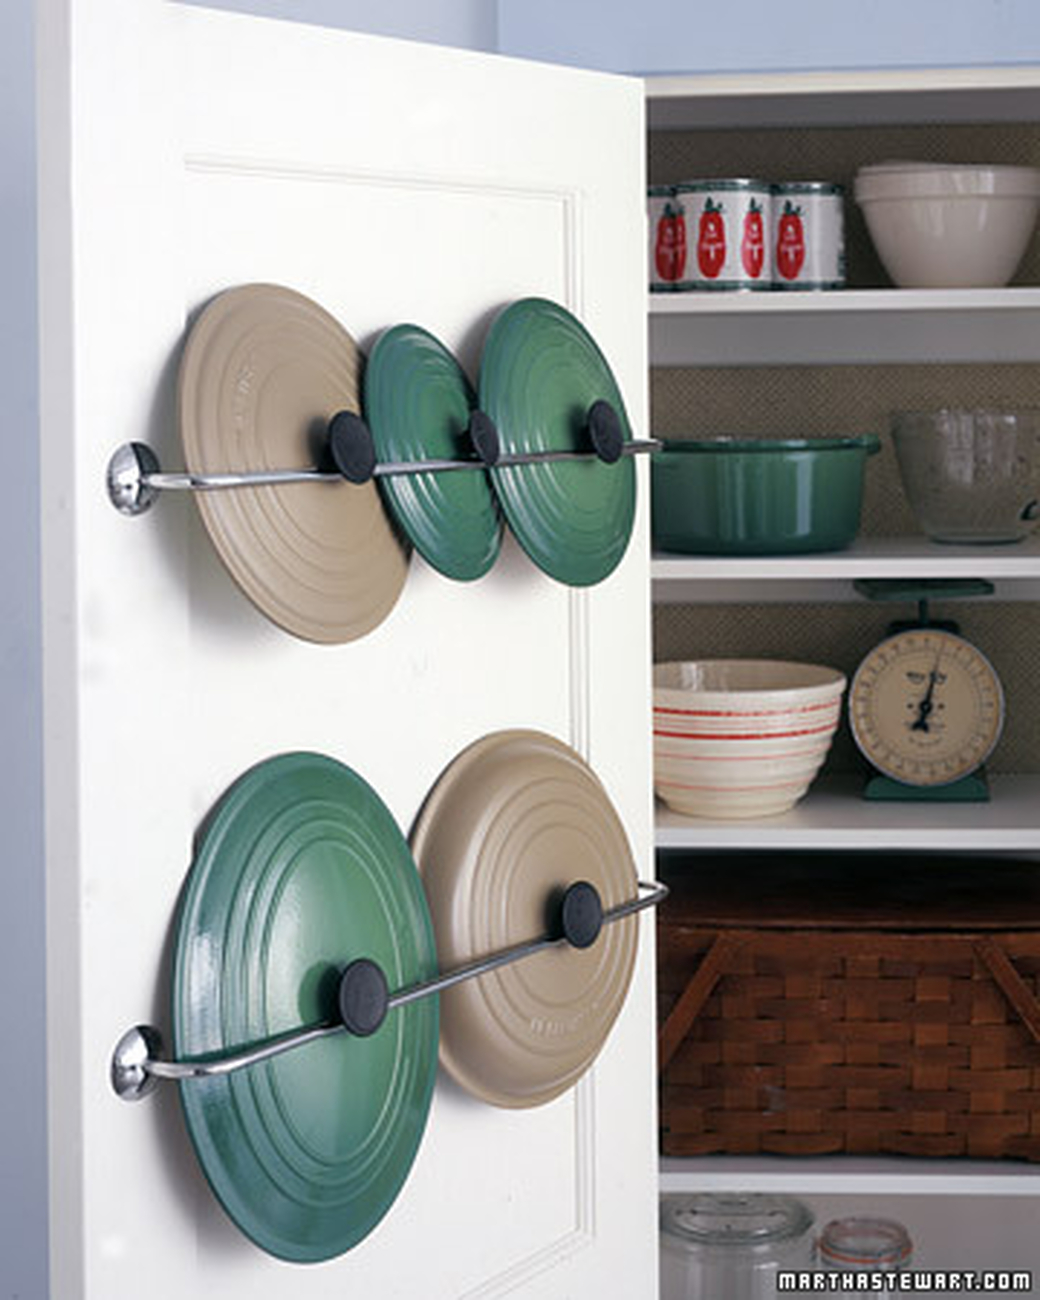 towel bars to store lids